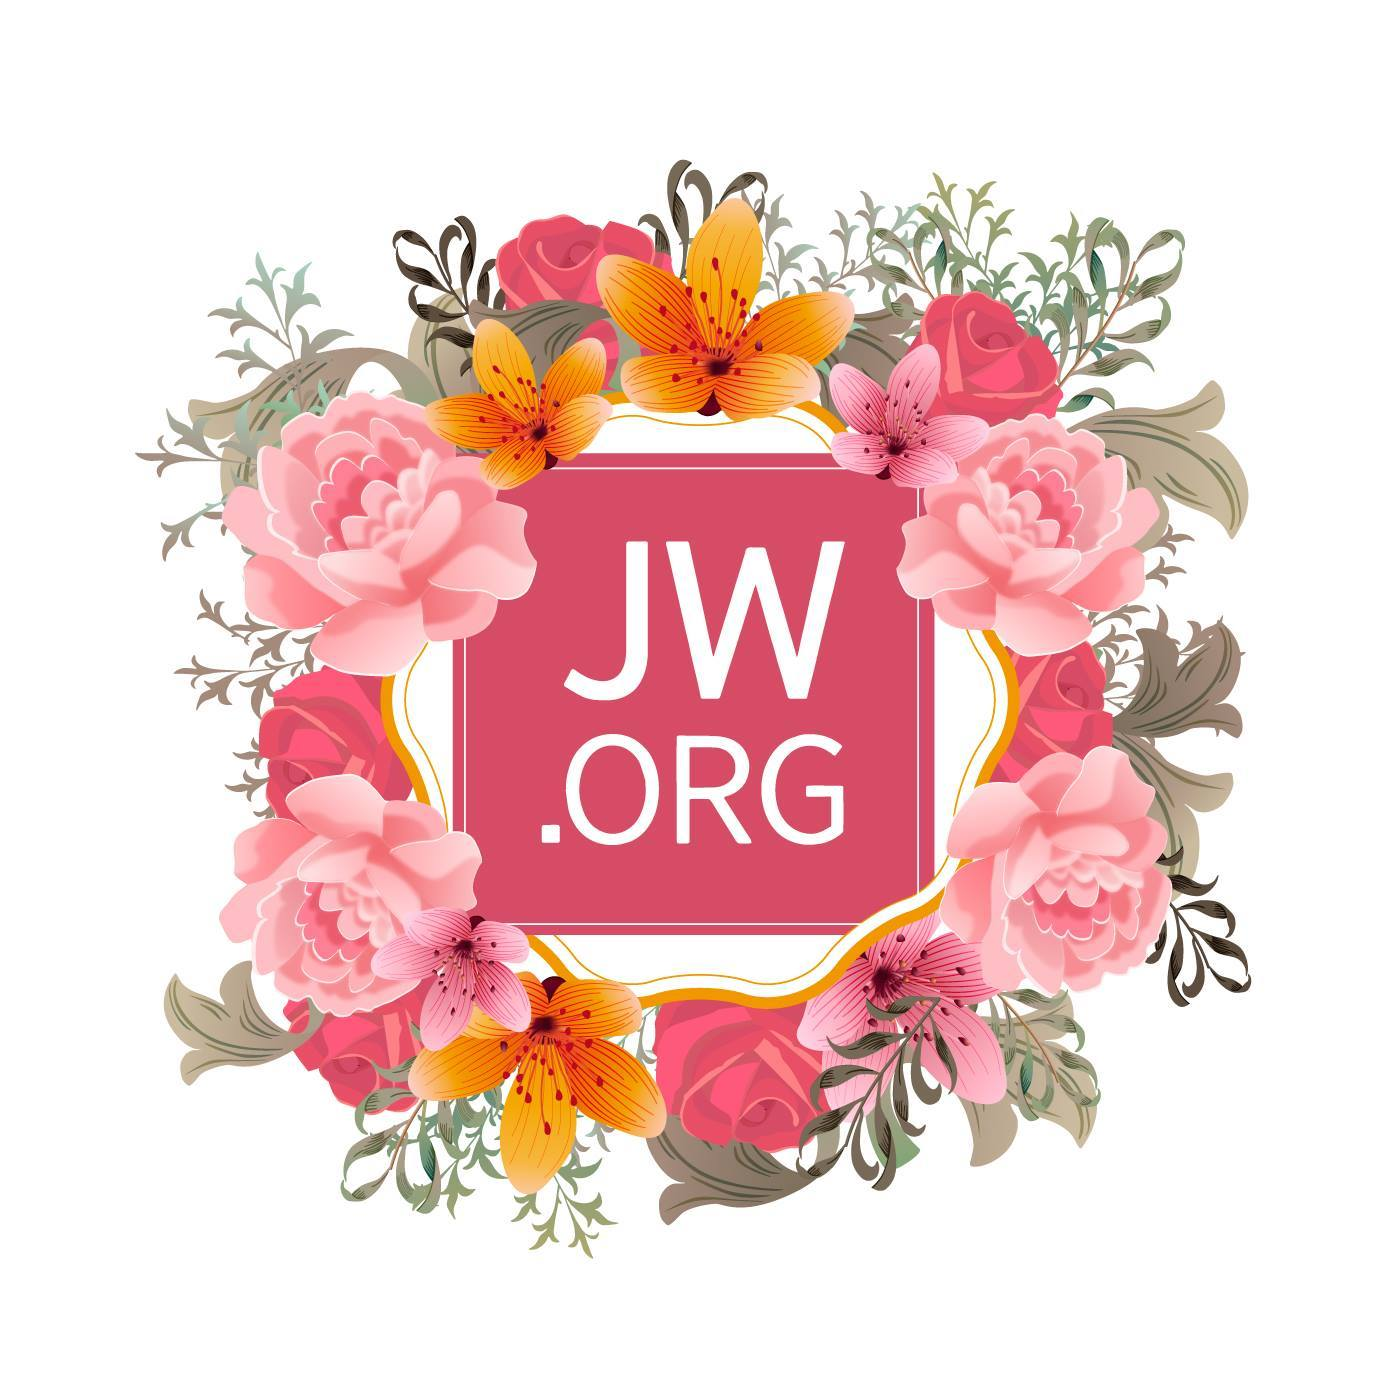 Jw Org Wallpapers Top Free Jw Org Backgrounds Wallpaperaccess It includes multiple bible translations, as well as books and. jw org wallpapers top free jw org